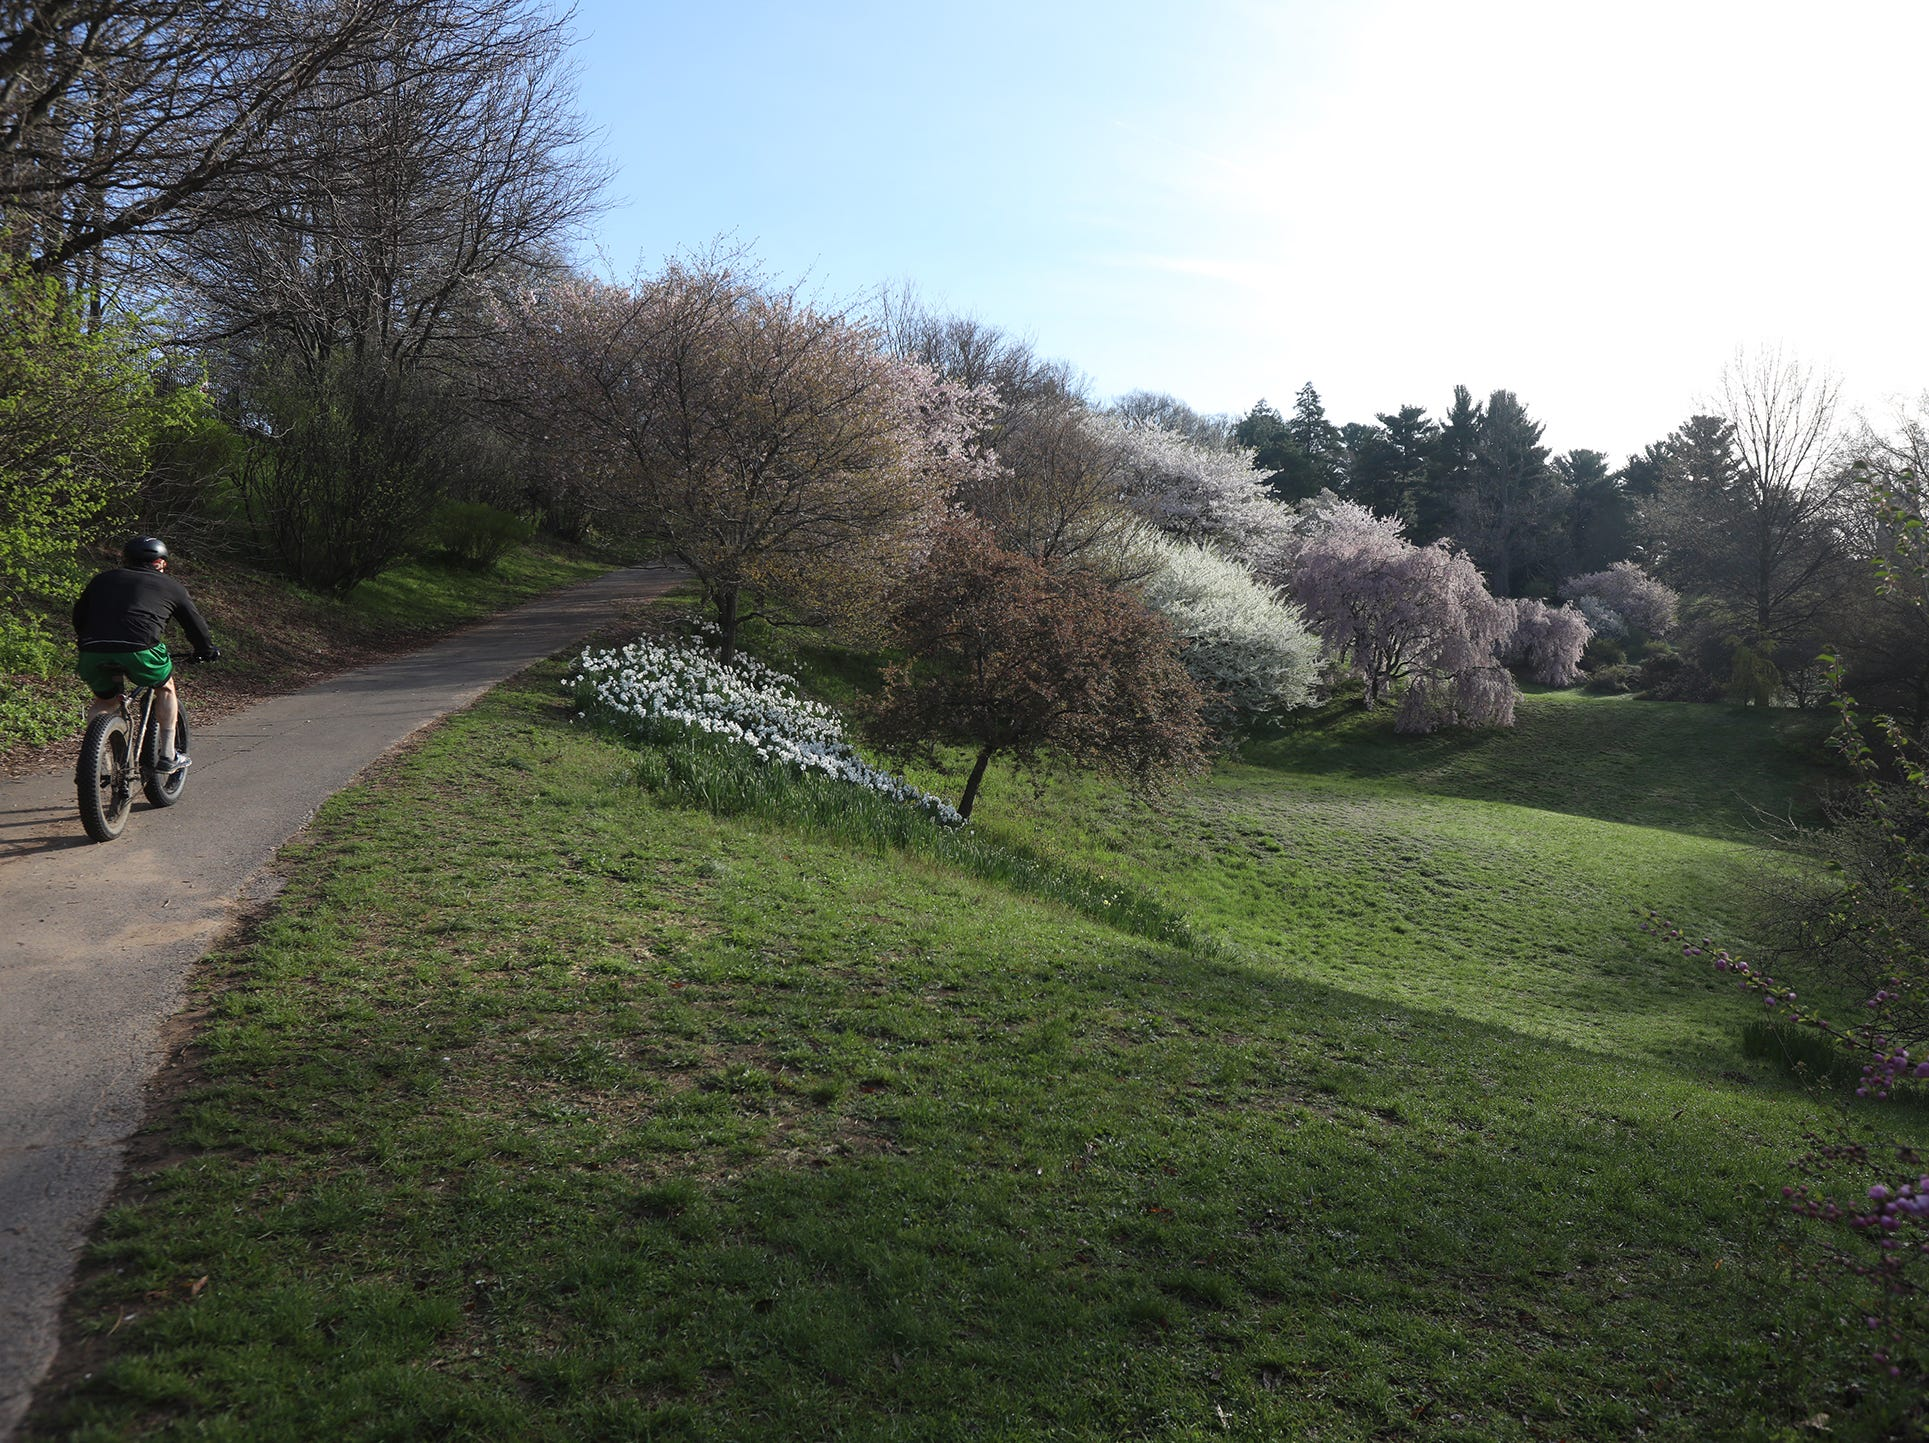 Highland Park has a variety of trees, shrubs and flowers throughout the park.